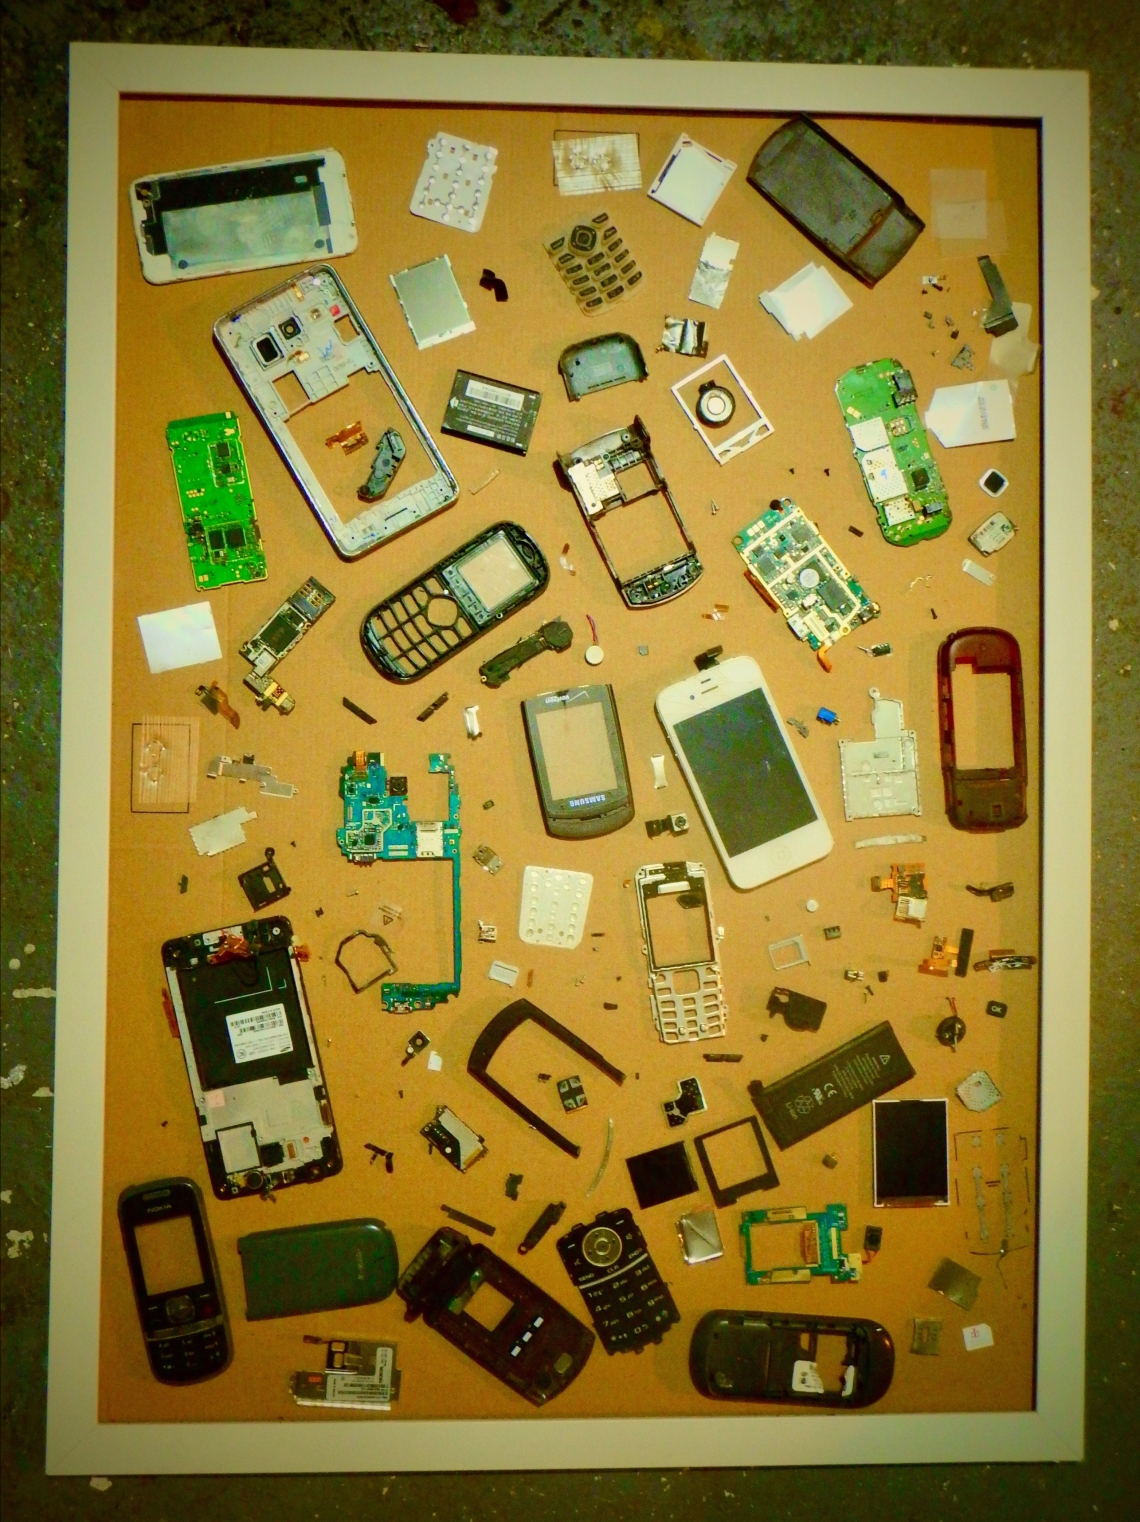 What is inside our phones?